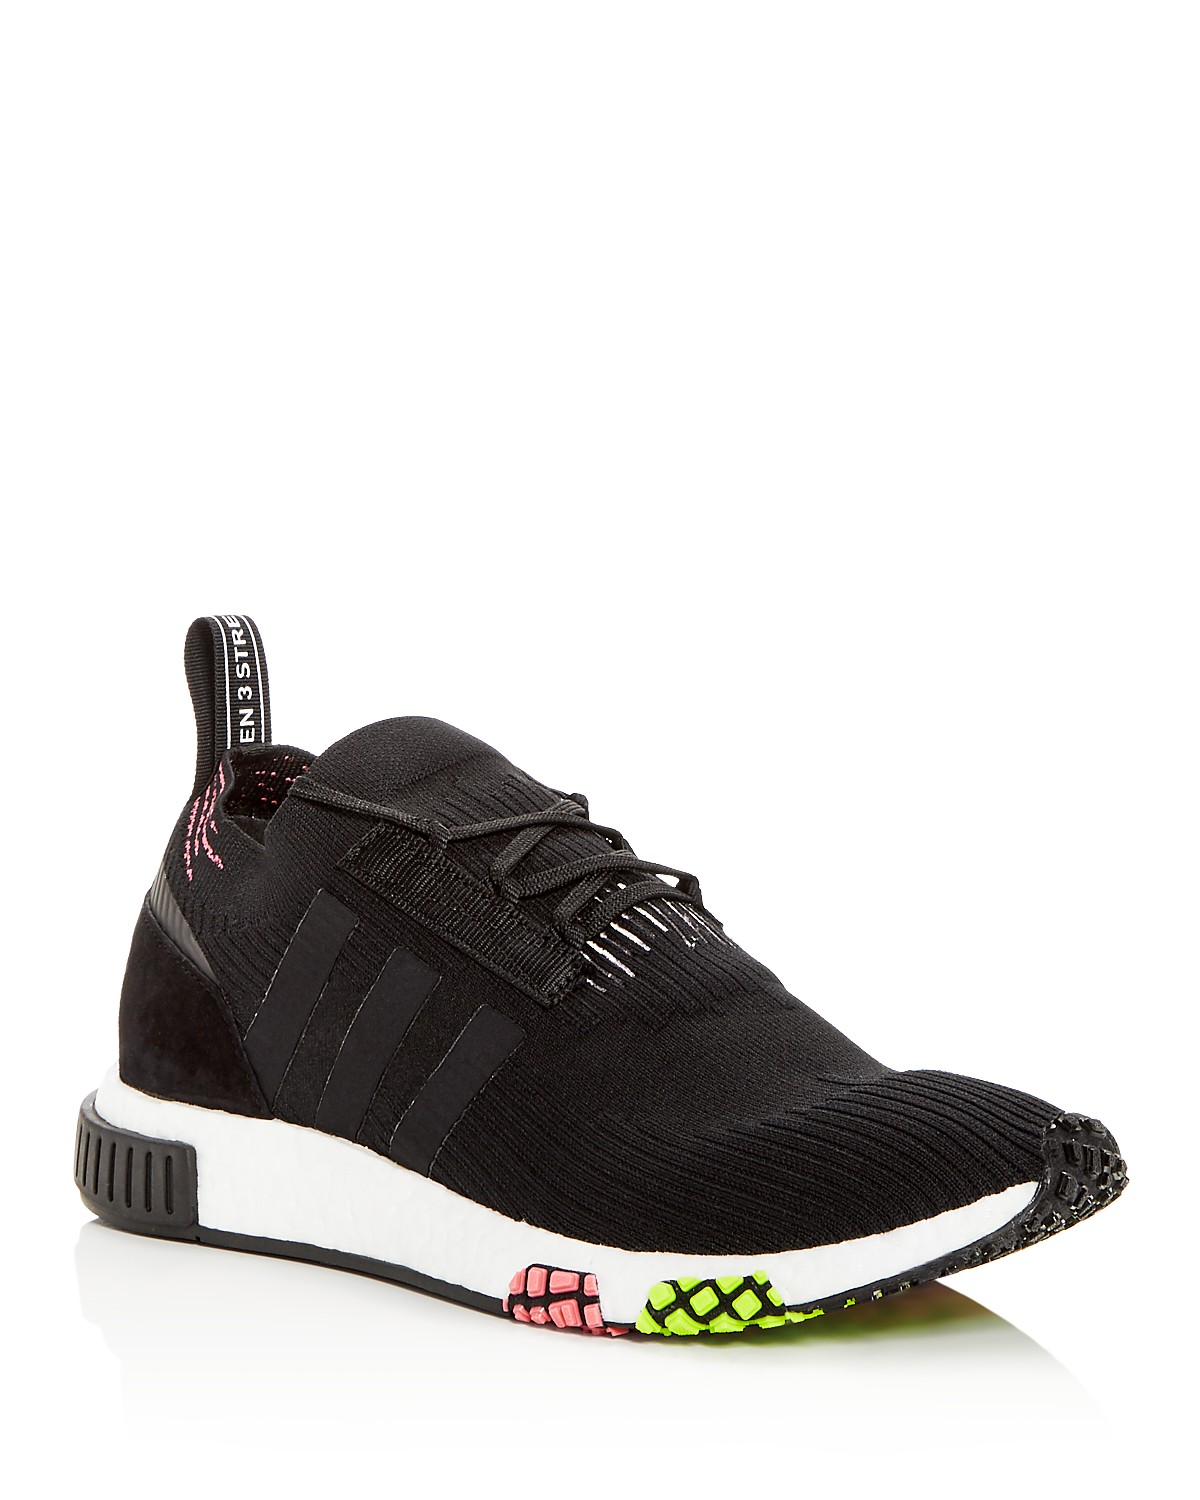 adidas Men's Nmd R1 Knit Lace Up Sneakers aVmgqVb